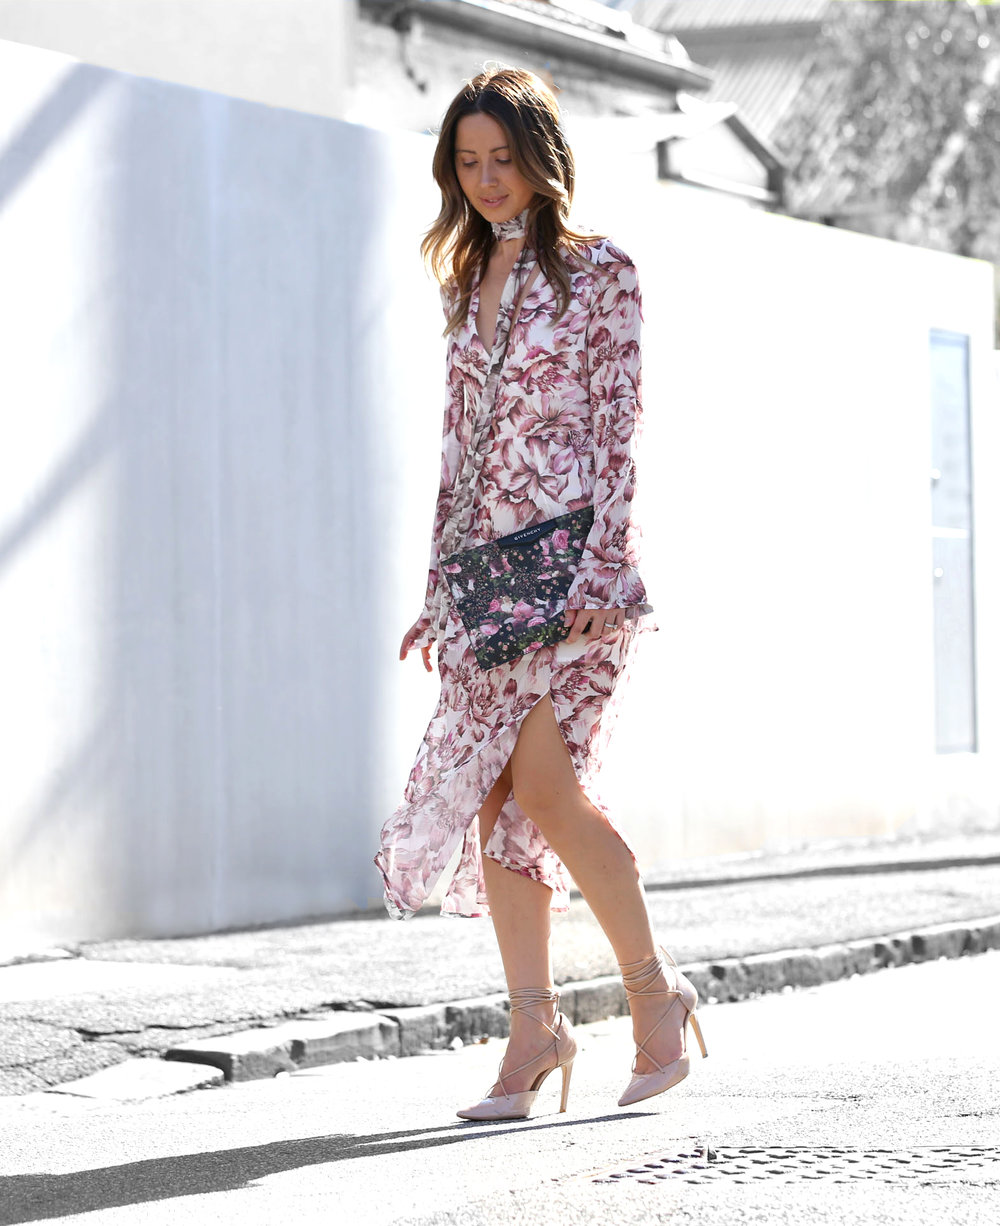 FriendinFashion_WhoWhatWear_Floral_2.jpg